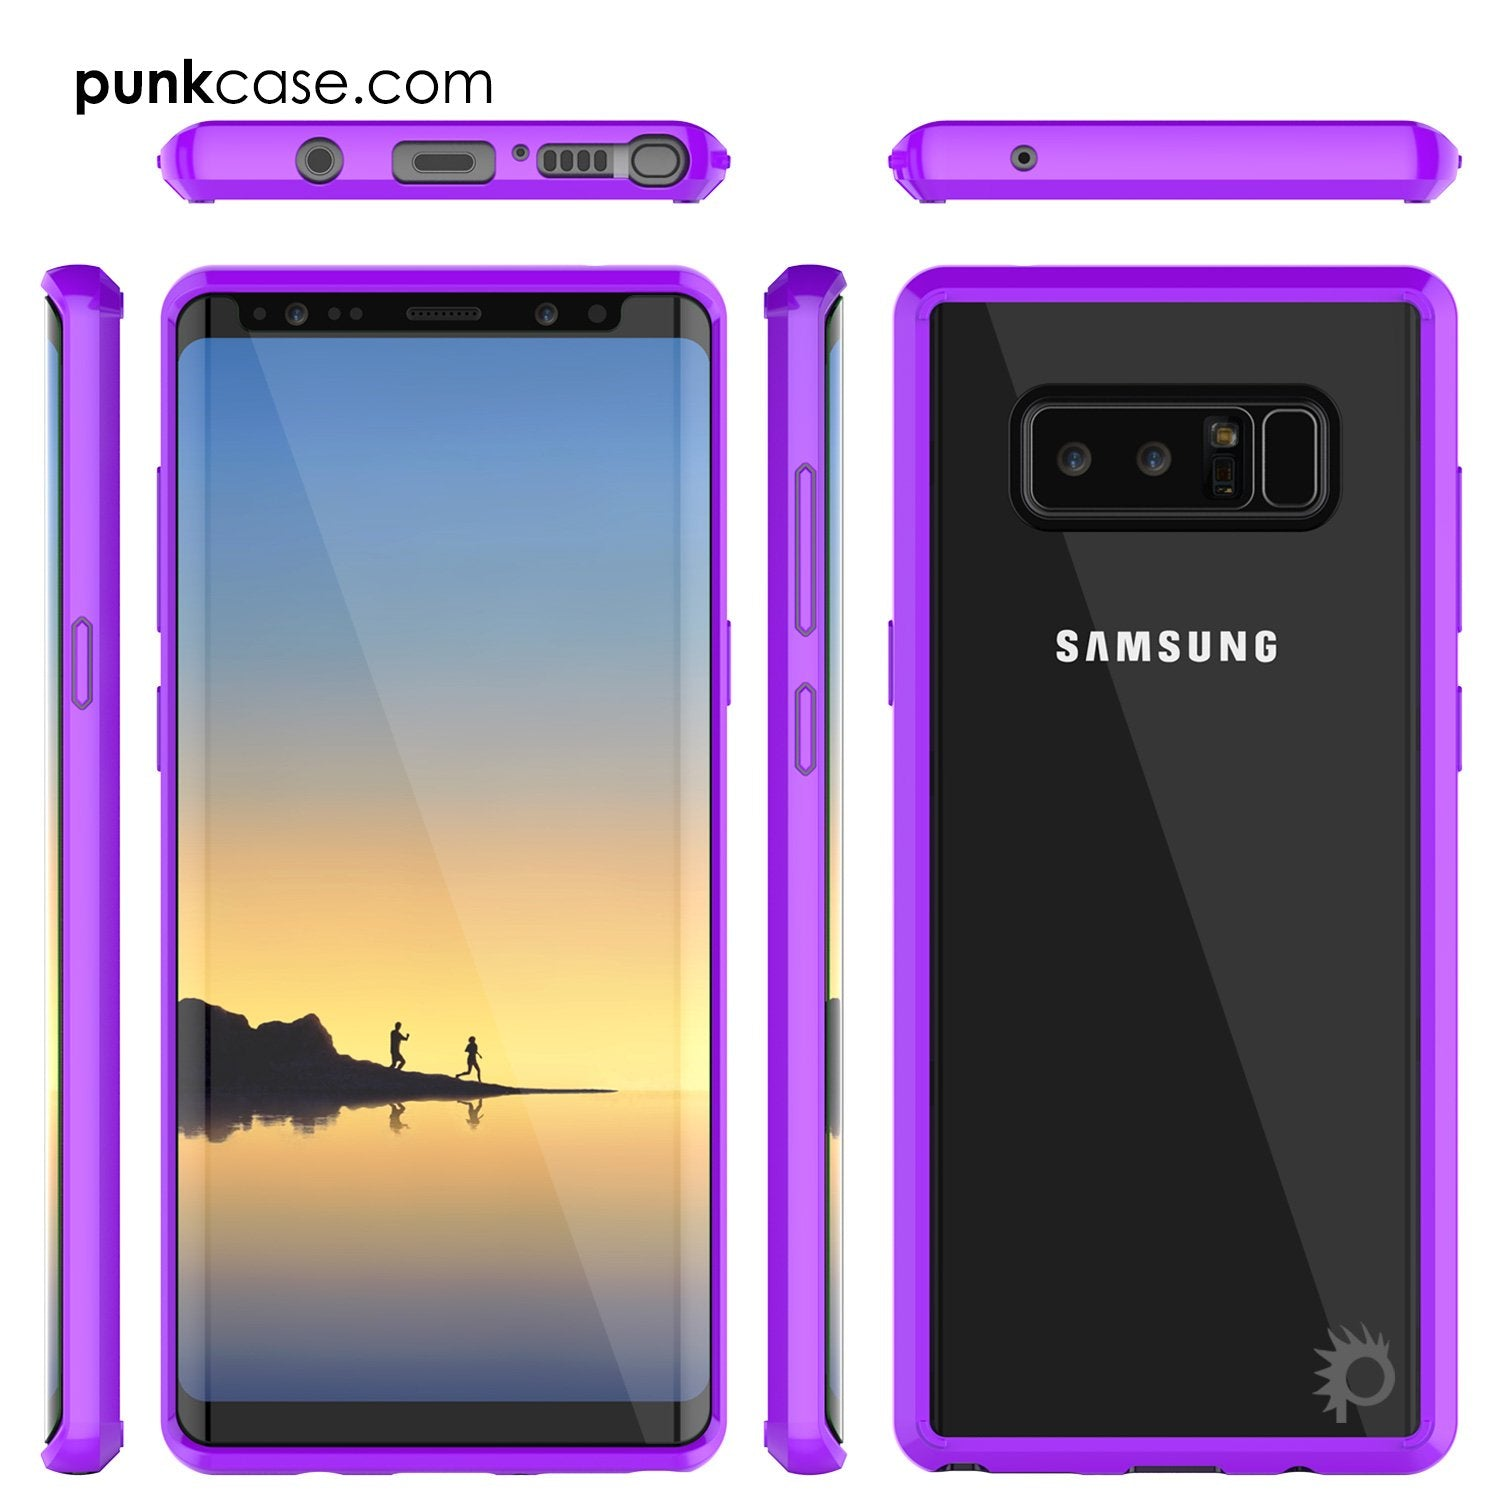 Galaxy Note 8 Punkcase, LUCID 2.0 Series Armor Case Anti-Shock, Purple